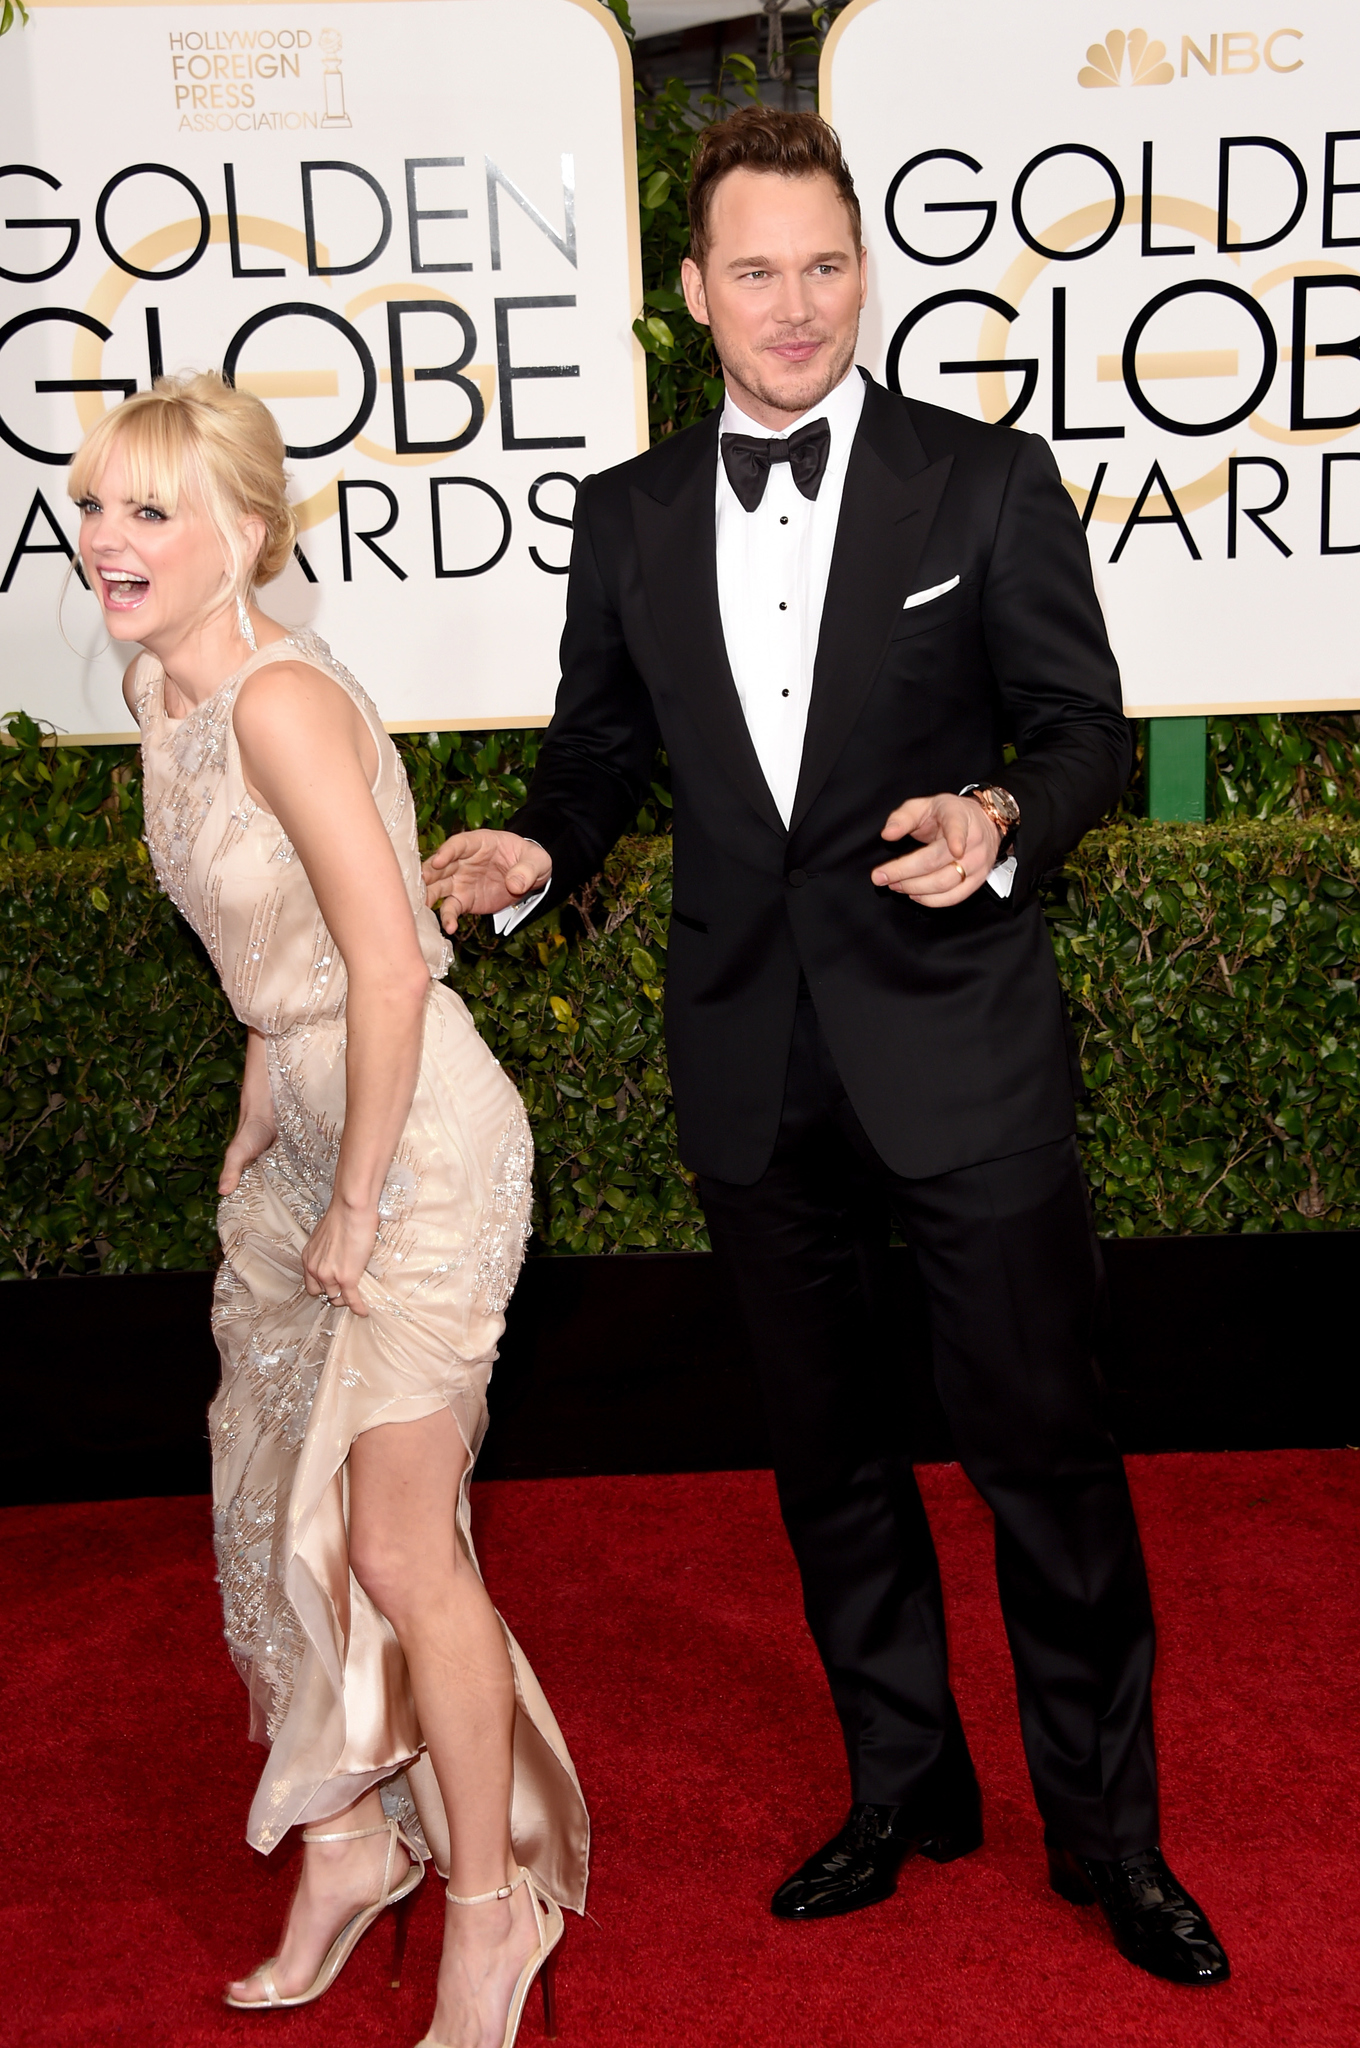 Anna Faris and Chris Pratt at event of 72nd Golden Globe Awards (2015) photo #489101